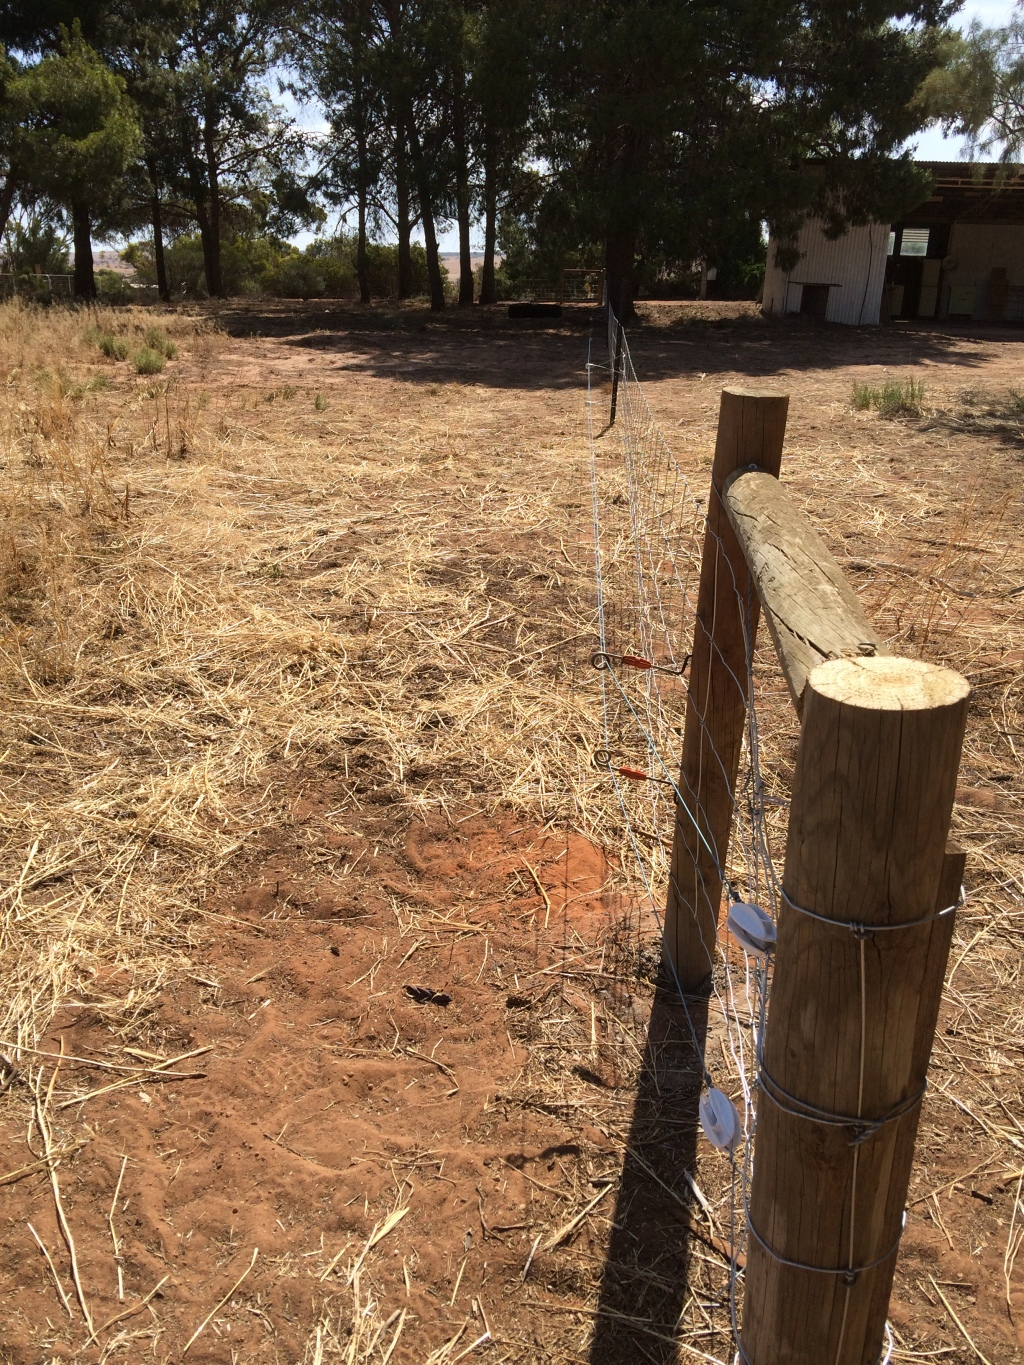 We've seen a lot of pig paddocks/yards/enclosures, and most of them are super dodgy. There's something about housing pigs that makes people think they should throw material together rather than build something permanent.  Not these paddocks though - they're pro!